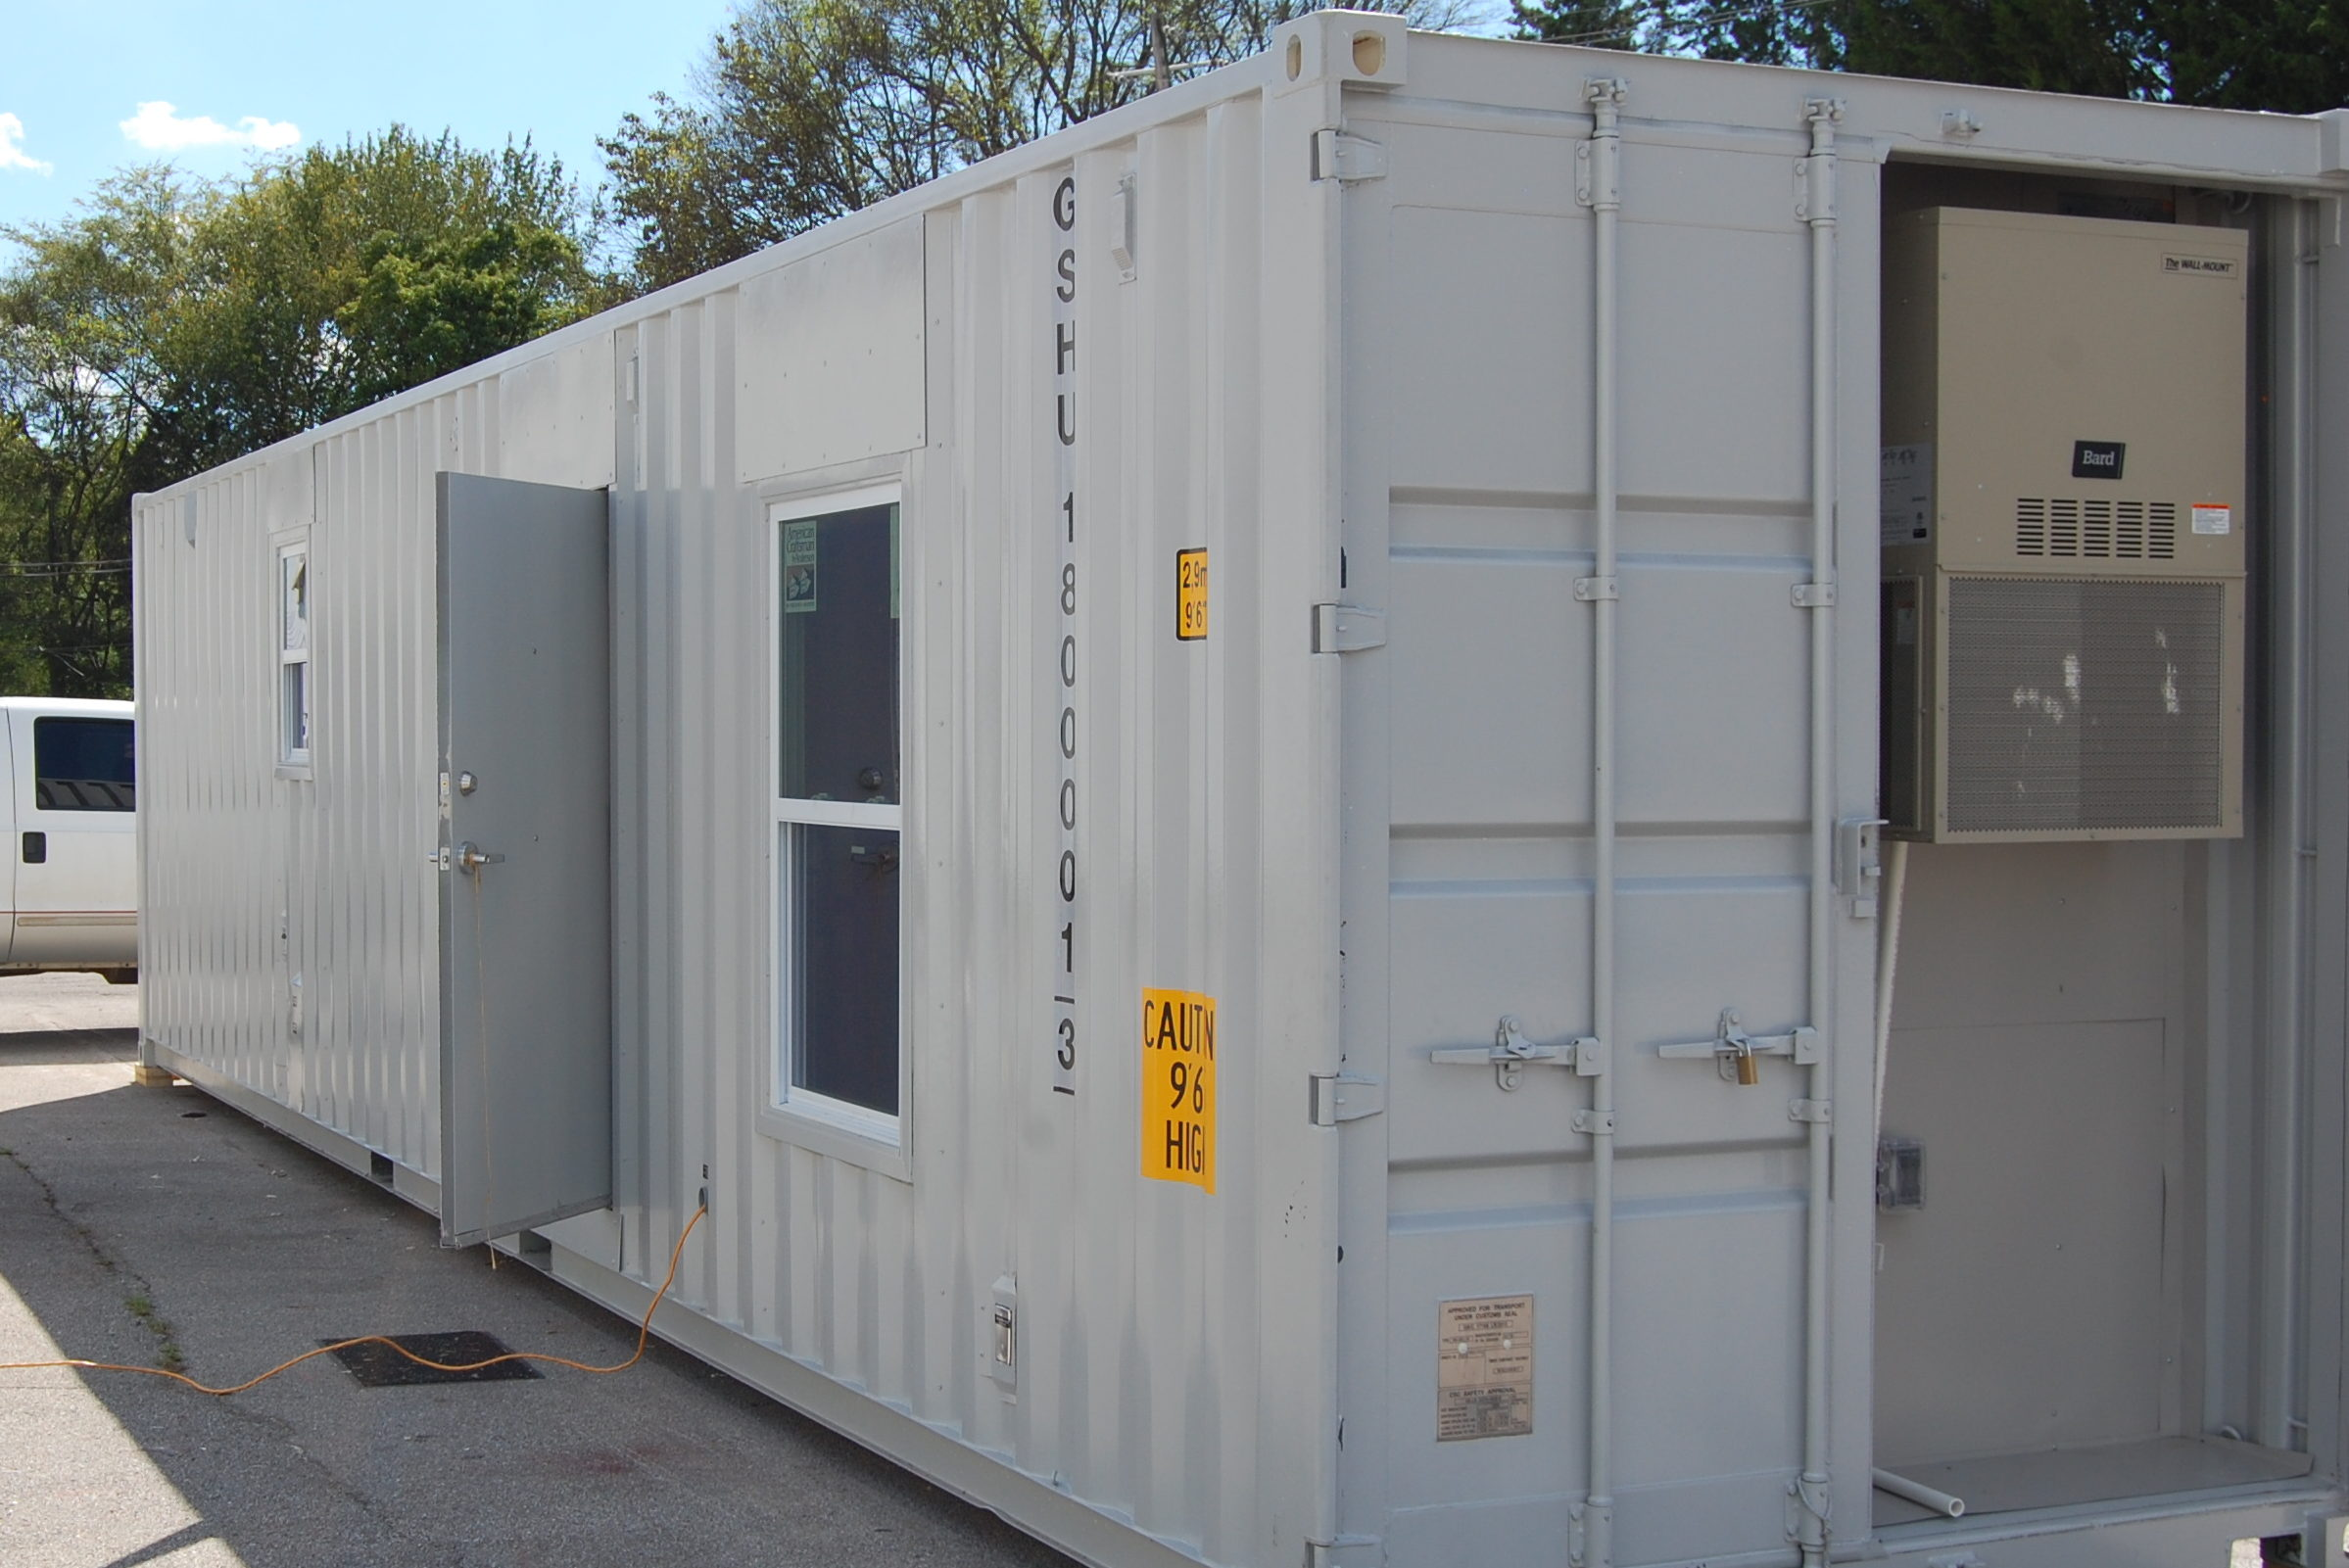 GSH_CFU Exterior Front View 2